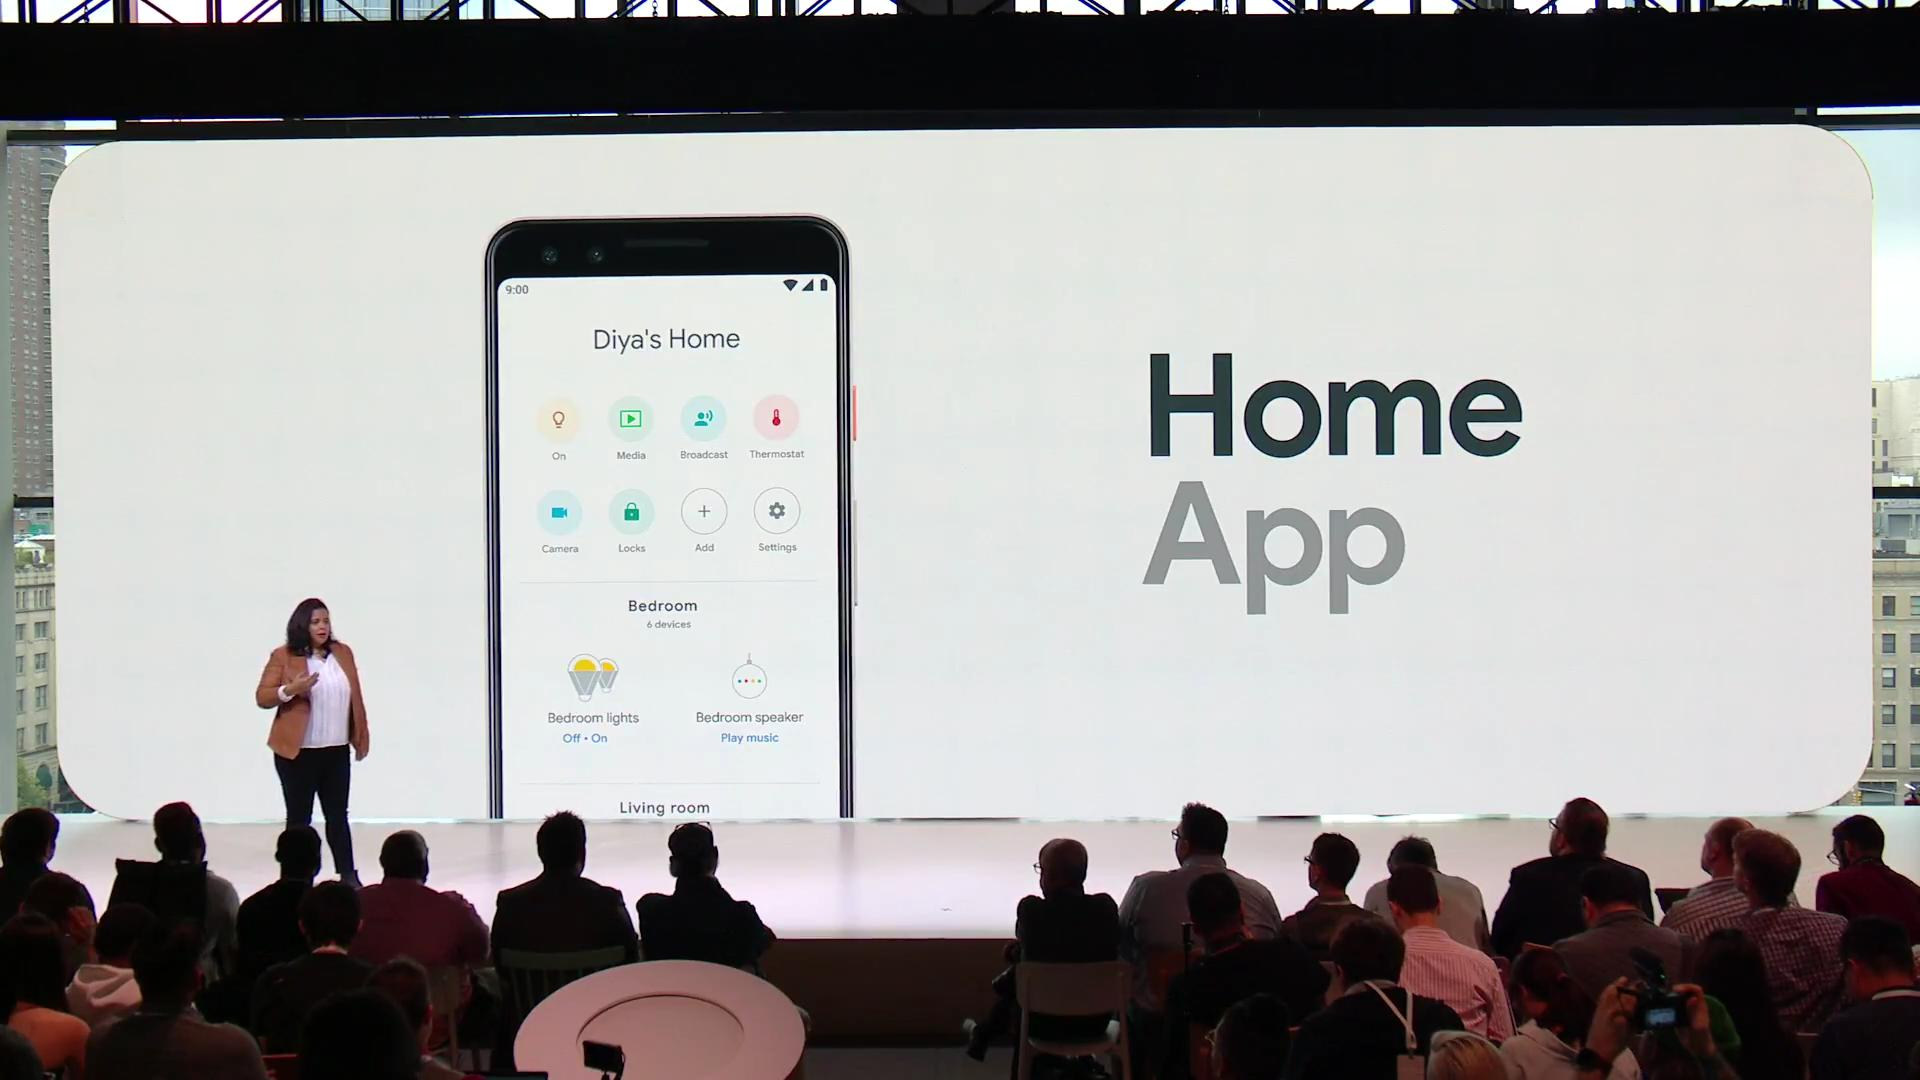 Google presented a new device Home Hub